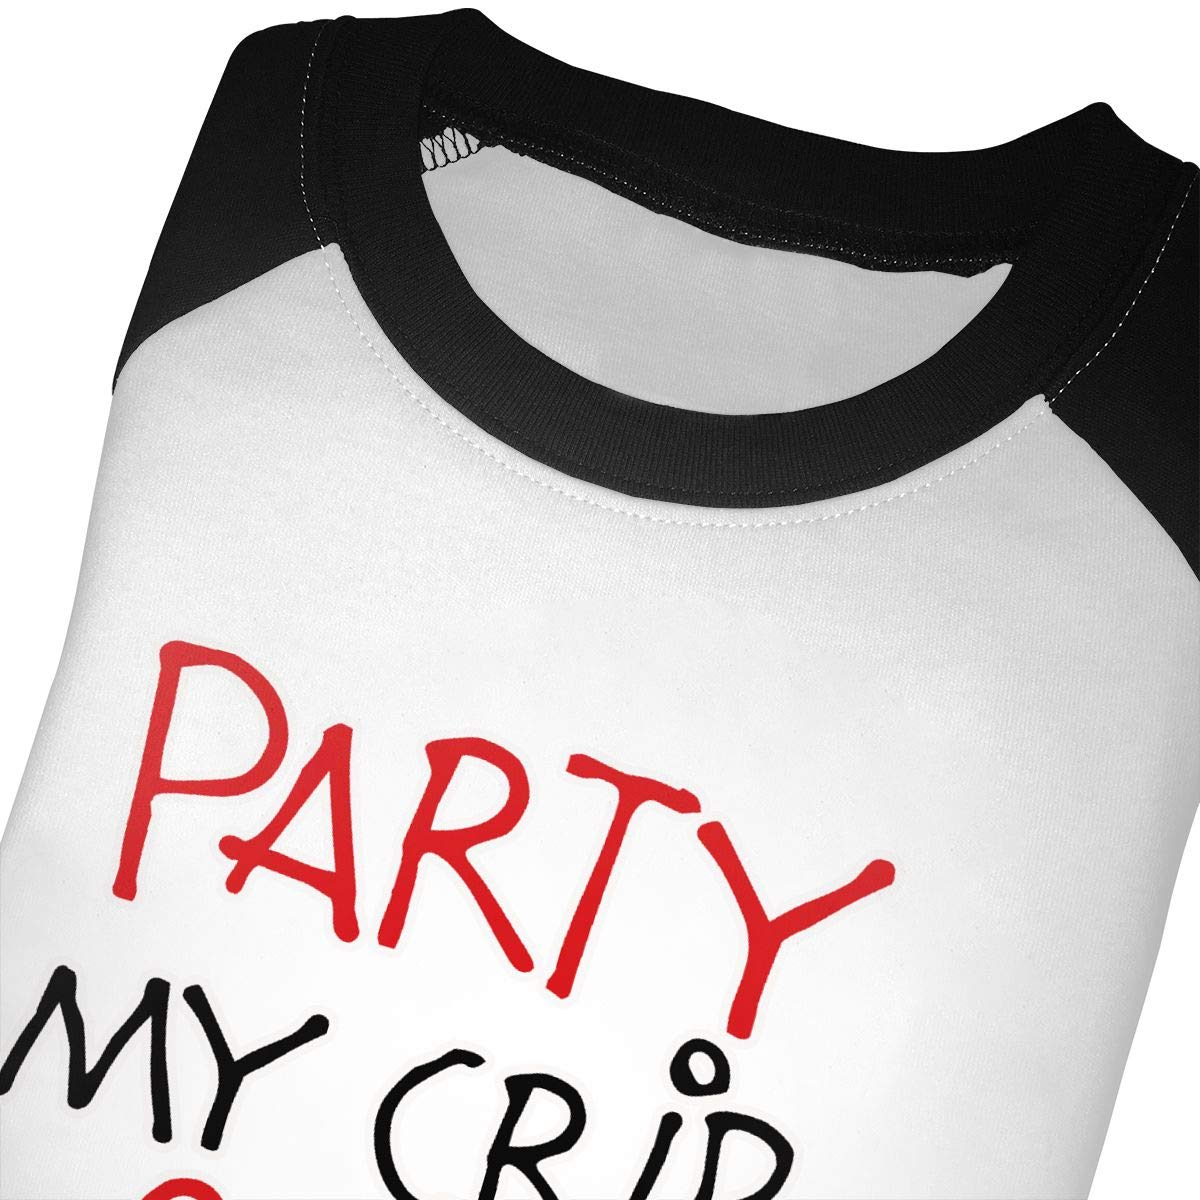 Cosy Party at My Crib 2 A.m Bring Bottle Unisex 100/% Cotton Childrens 3//4 Sleeves T-Shirt Top Tees 2T~5//6T